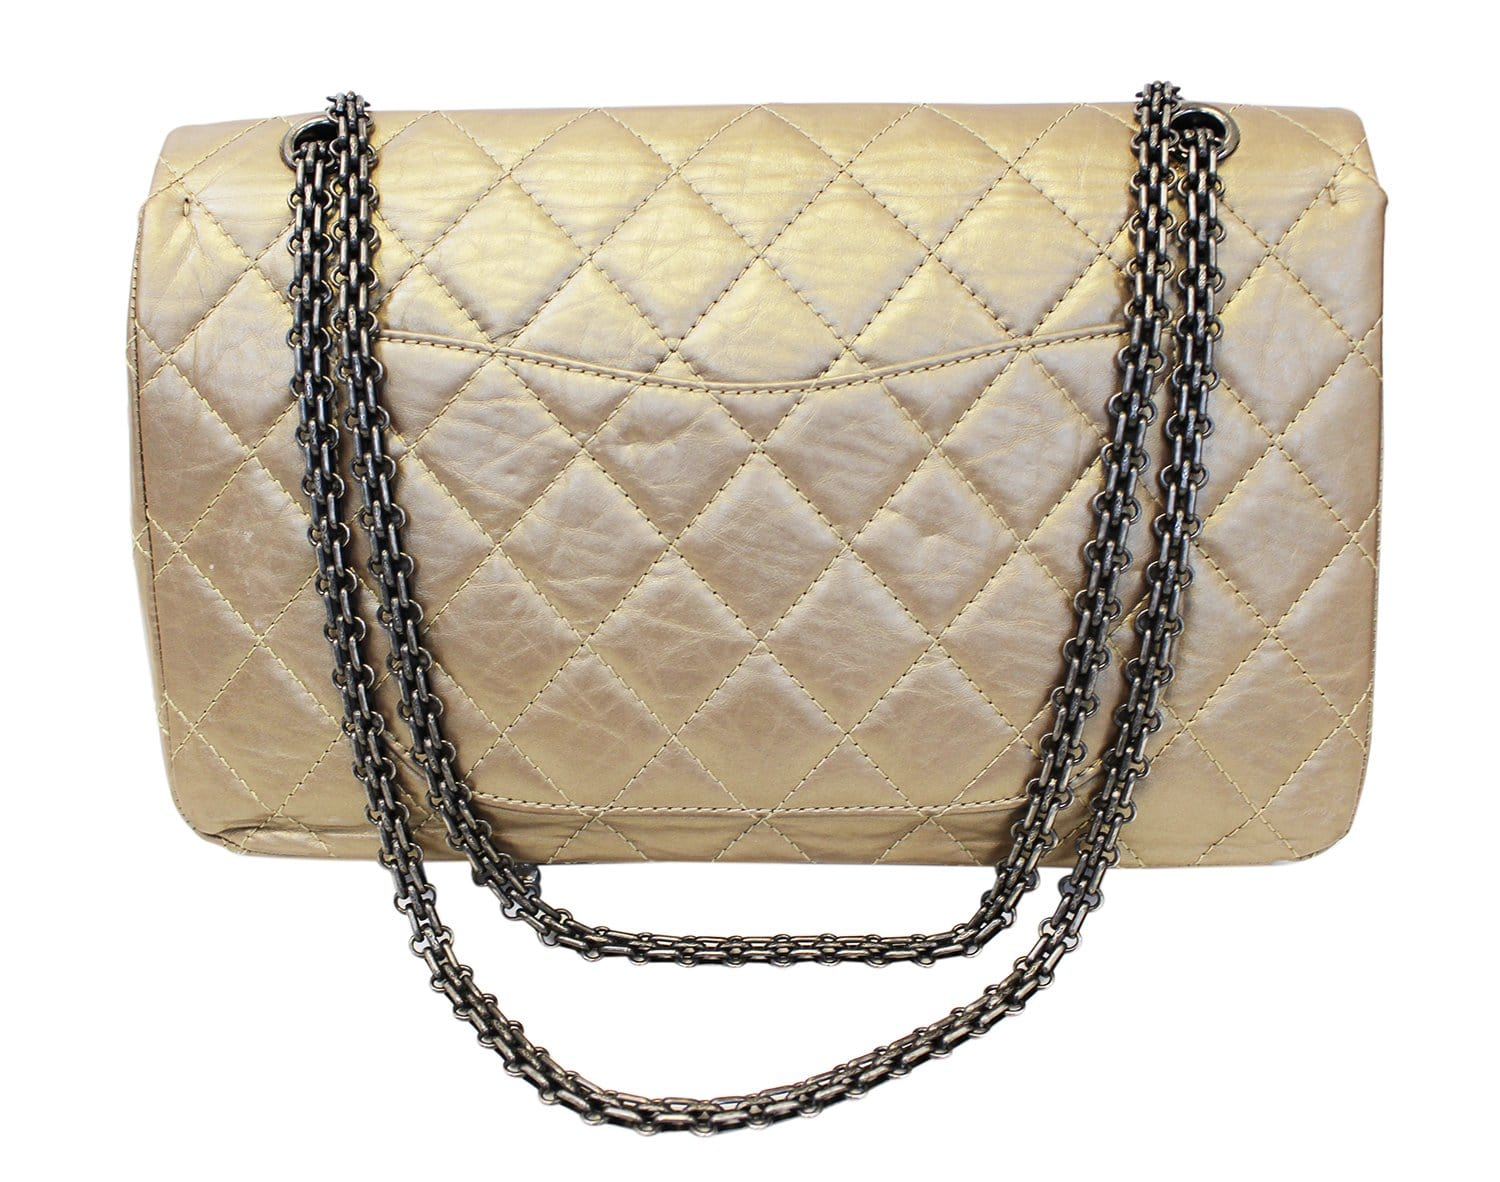 451f10b043a8 CHANEL Bronze 2.55 Reissue Quilted Classic Calfskin Leather 225 Flap Bag